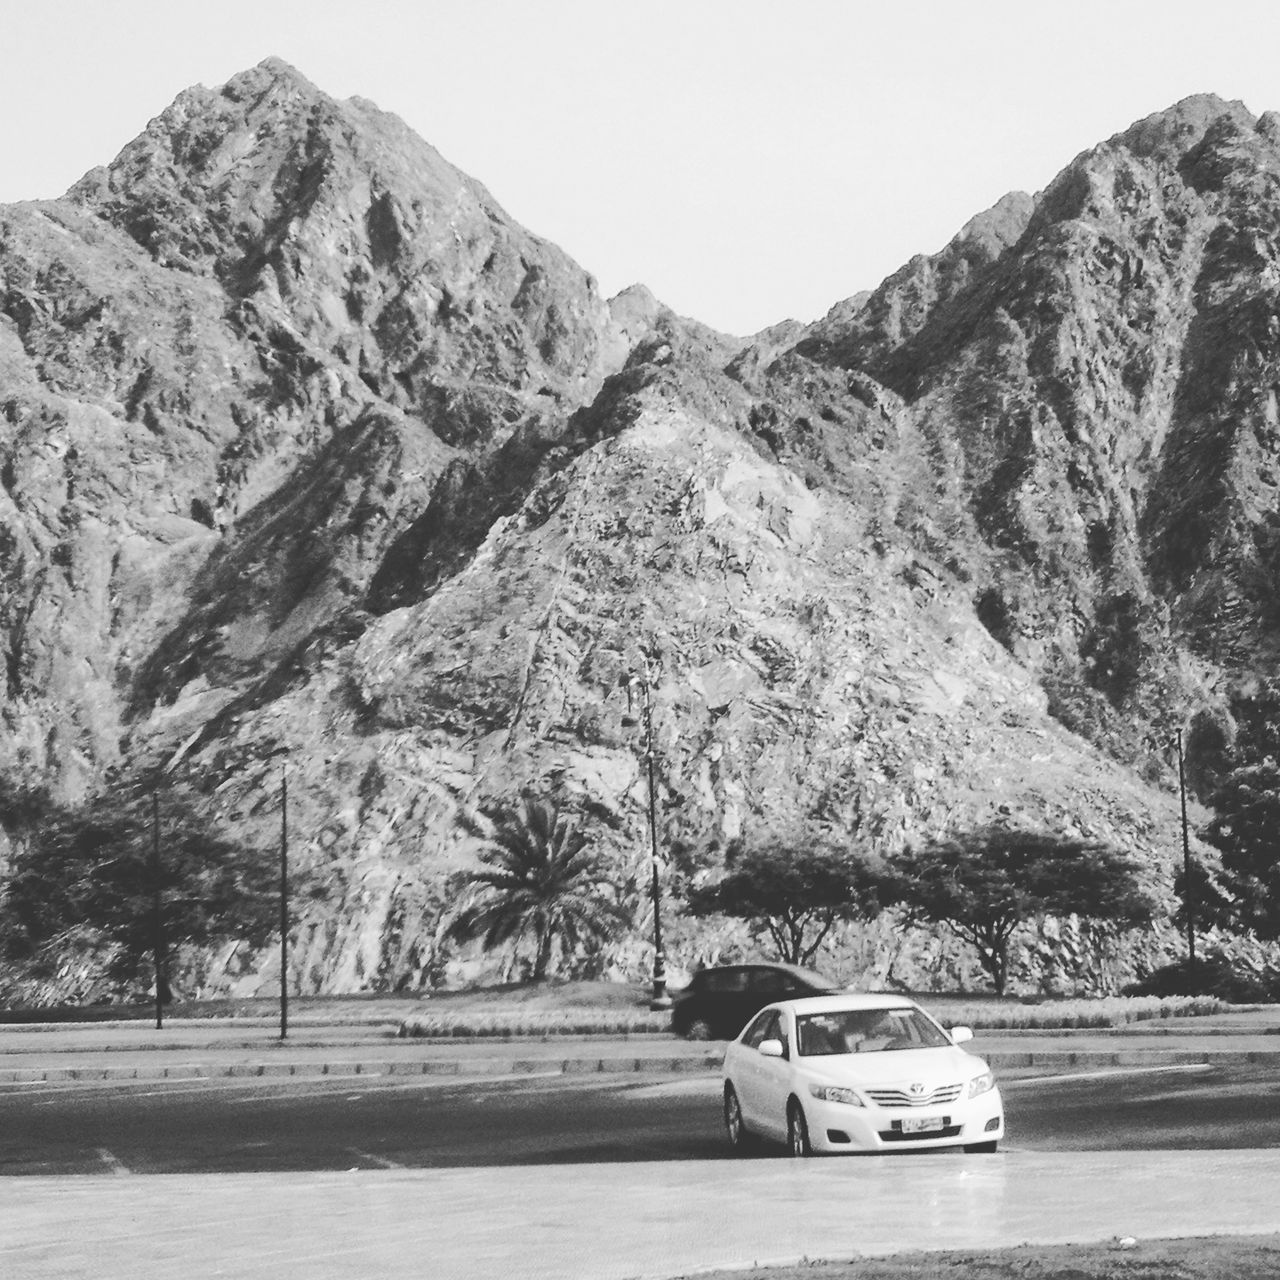 mountain, car, tree, transportation, mountain range, road, nature, no people, land vehicle, outdoors, beauty in nature, day, scenics, clear sky, sky